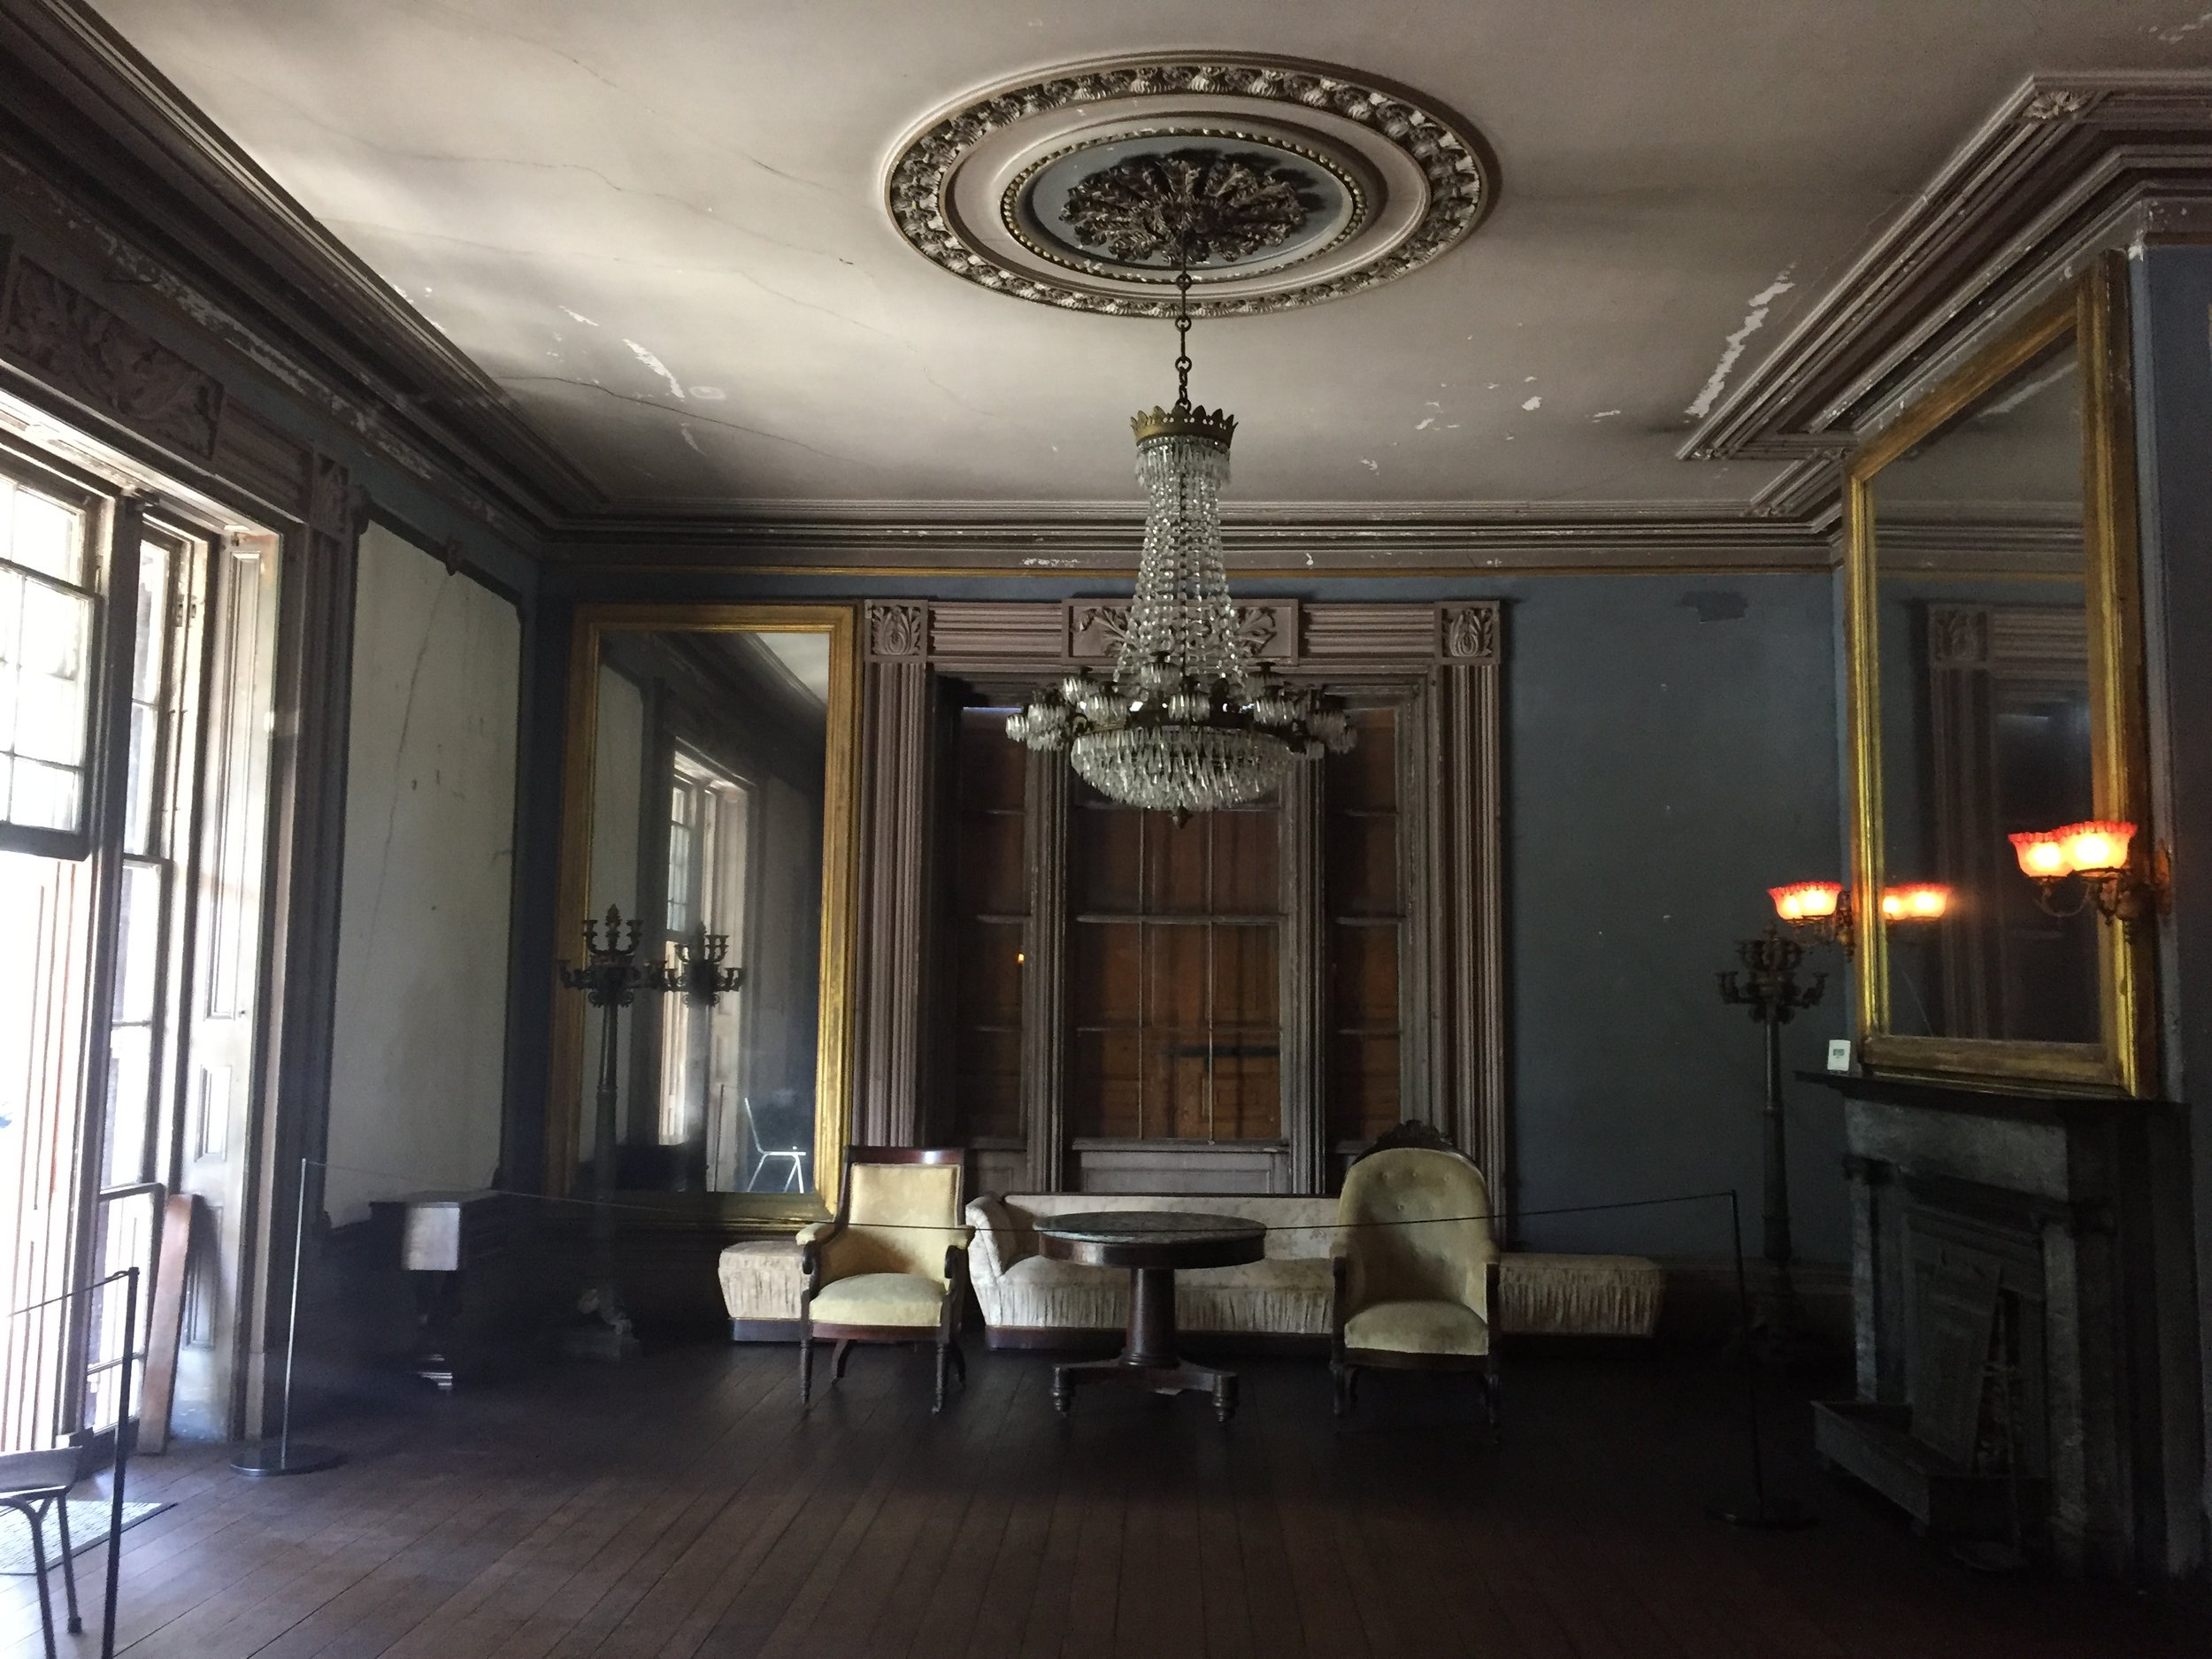 Once operating as the main entrance of the home now resides two symmetrical parlors divided between two pocket doors. The character and details of the house are popularly known as Greek Revival.